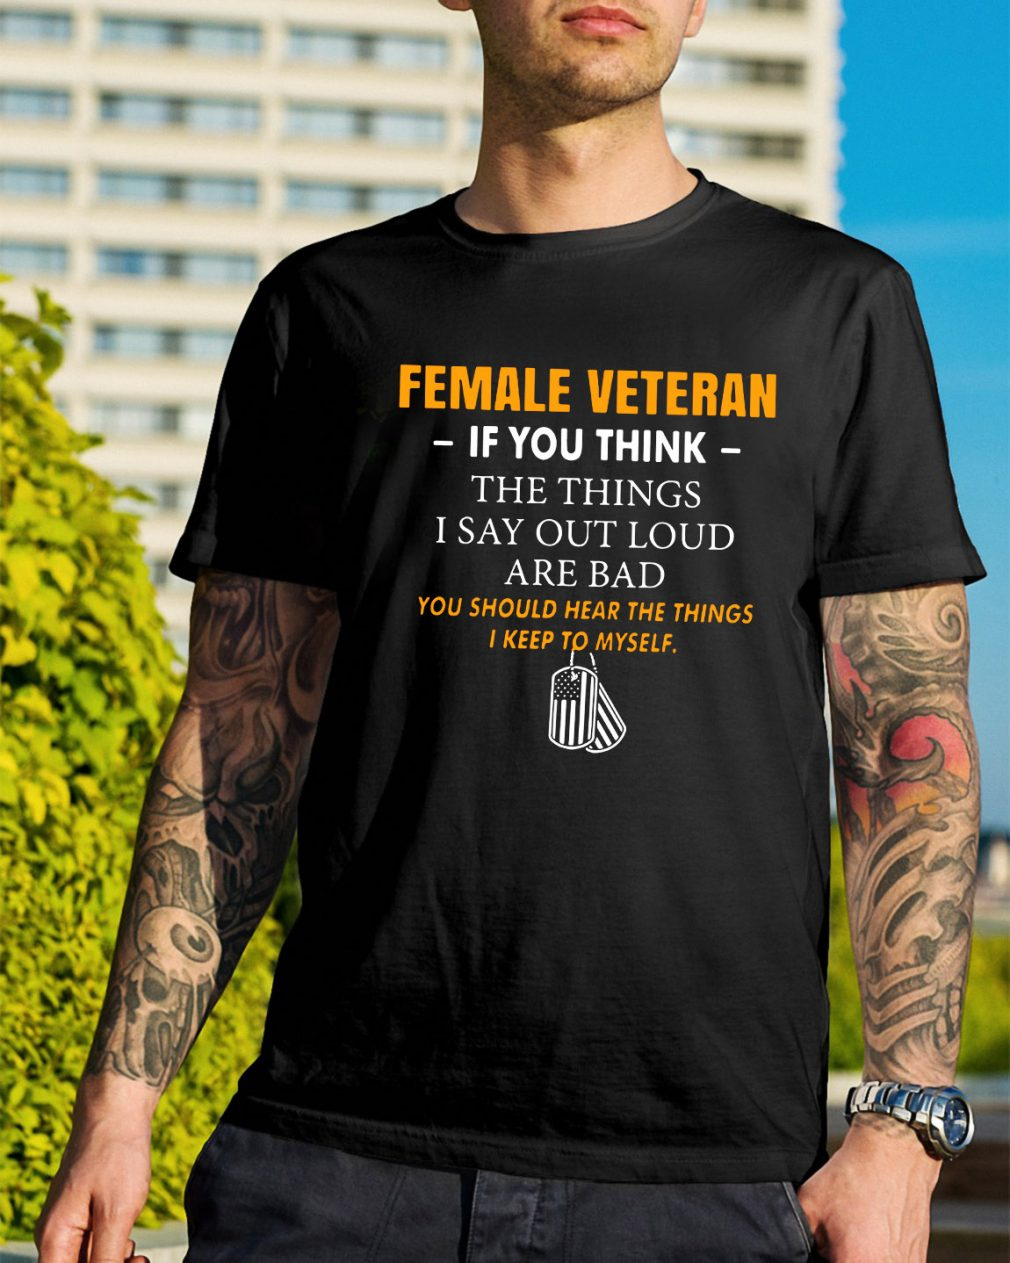 Female Veteran if you think the things I say out loud are bad shirt